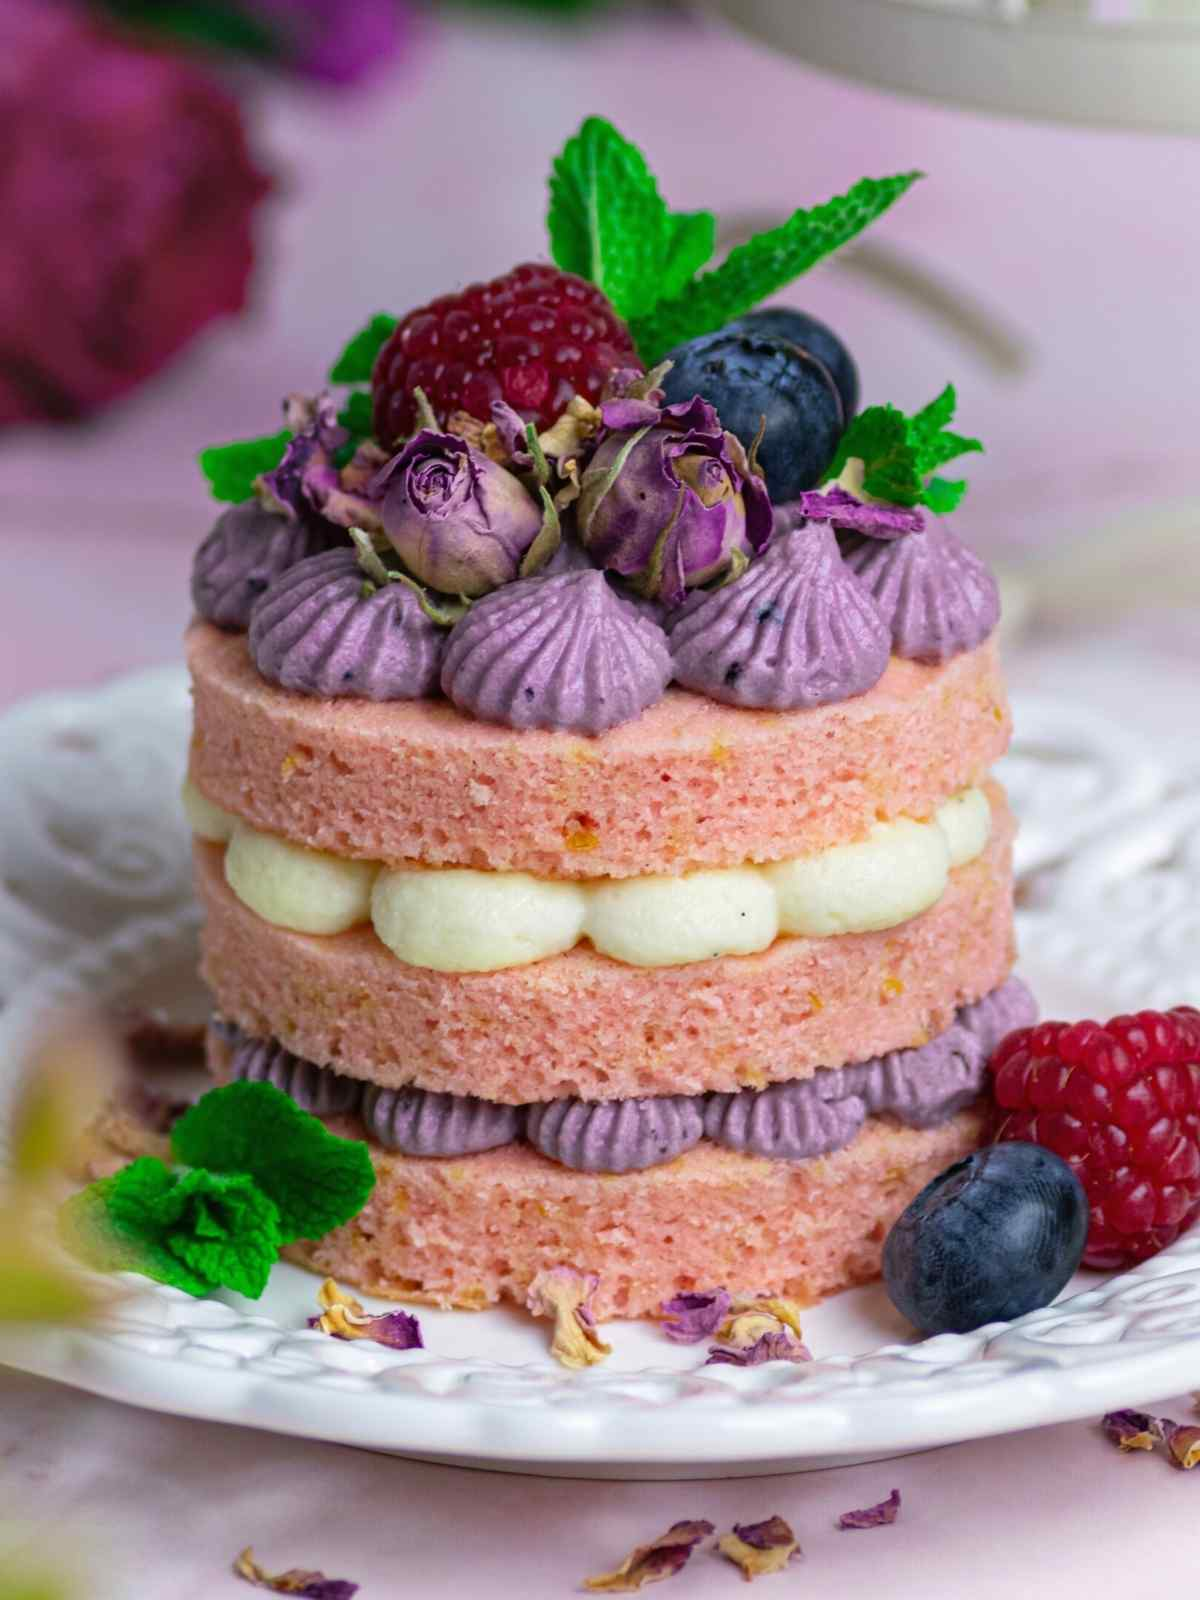 Mini cake with cream cheese frosting between the layers decorated with fresh fruit